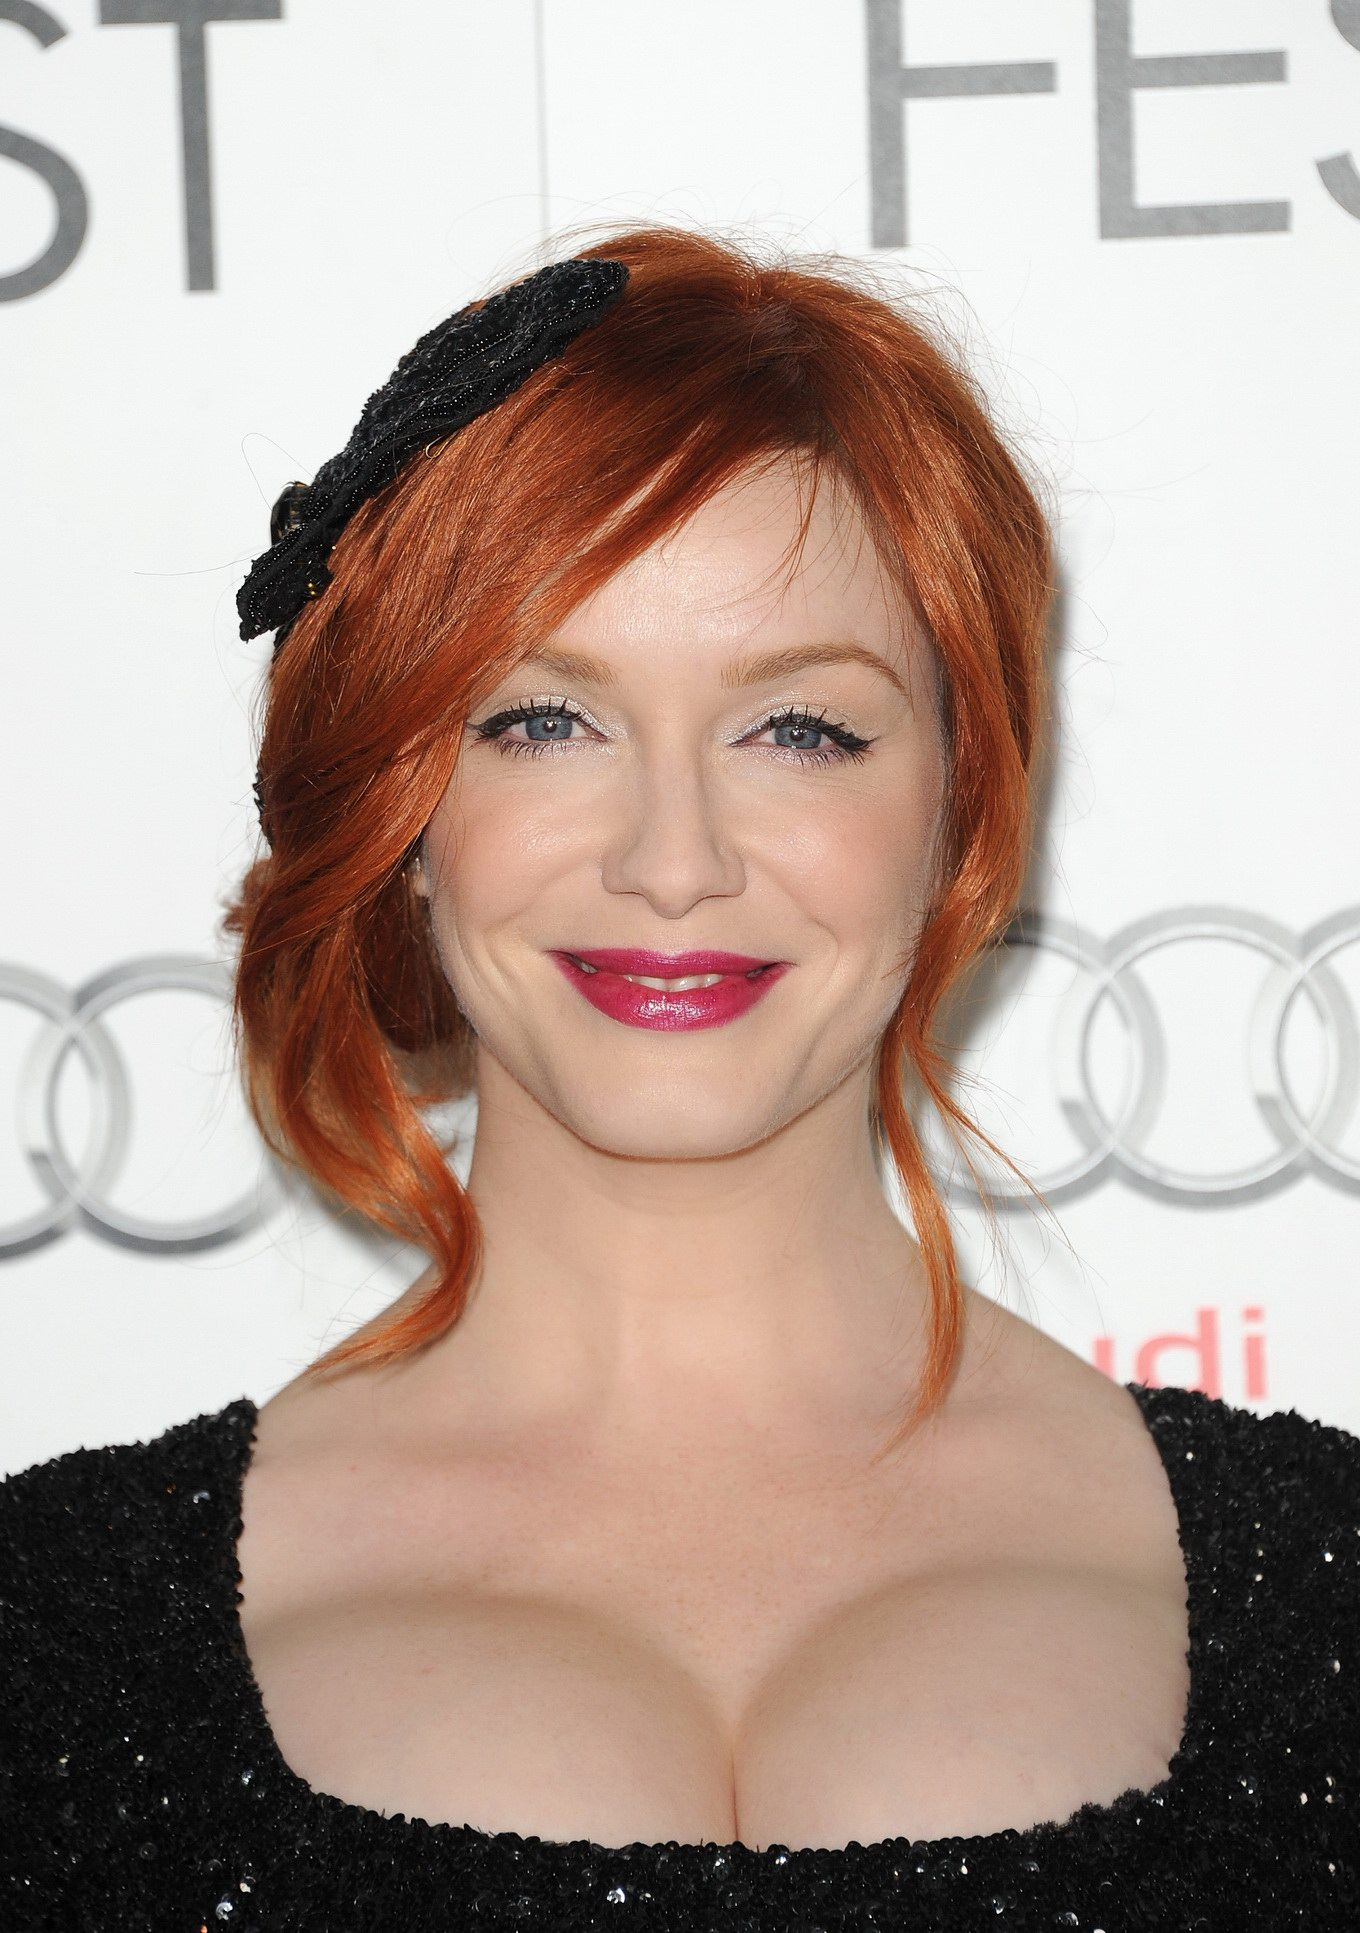 Christina Hendricks Shows Awesome Cleavage Wearing A Black